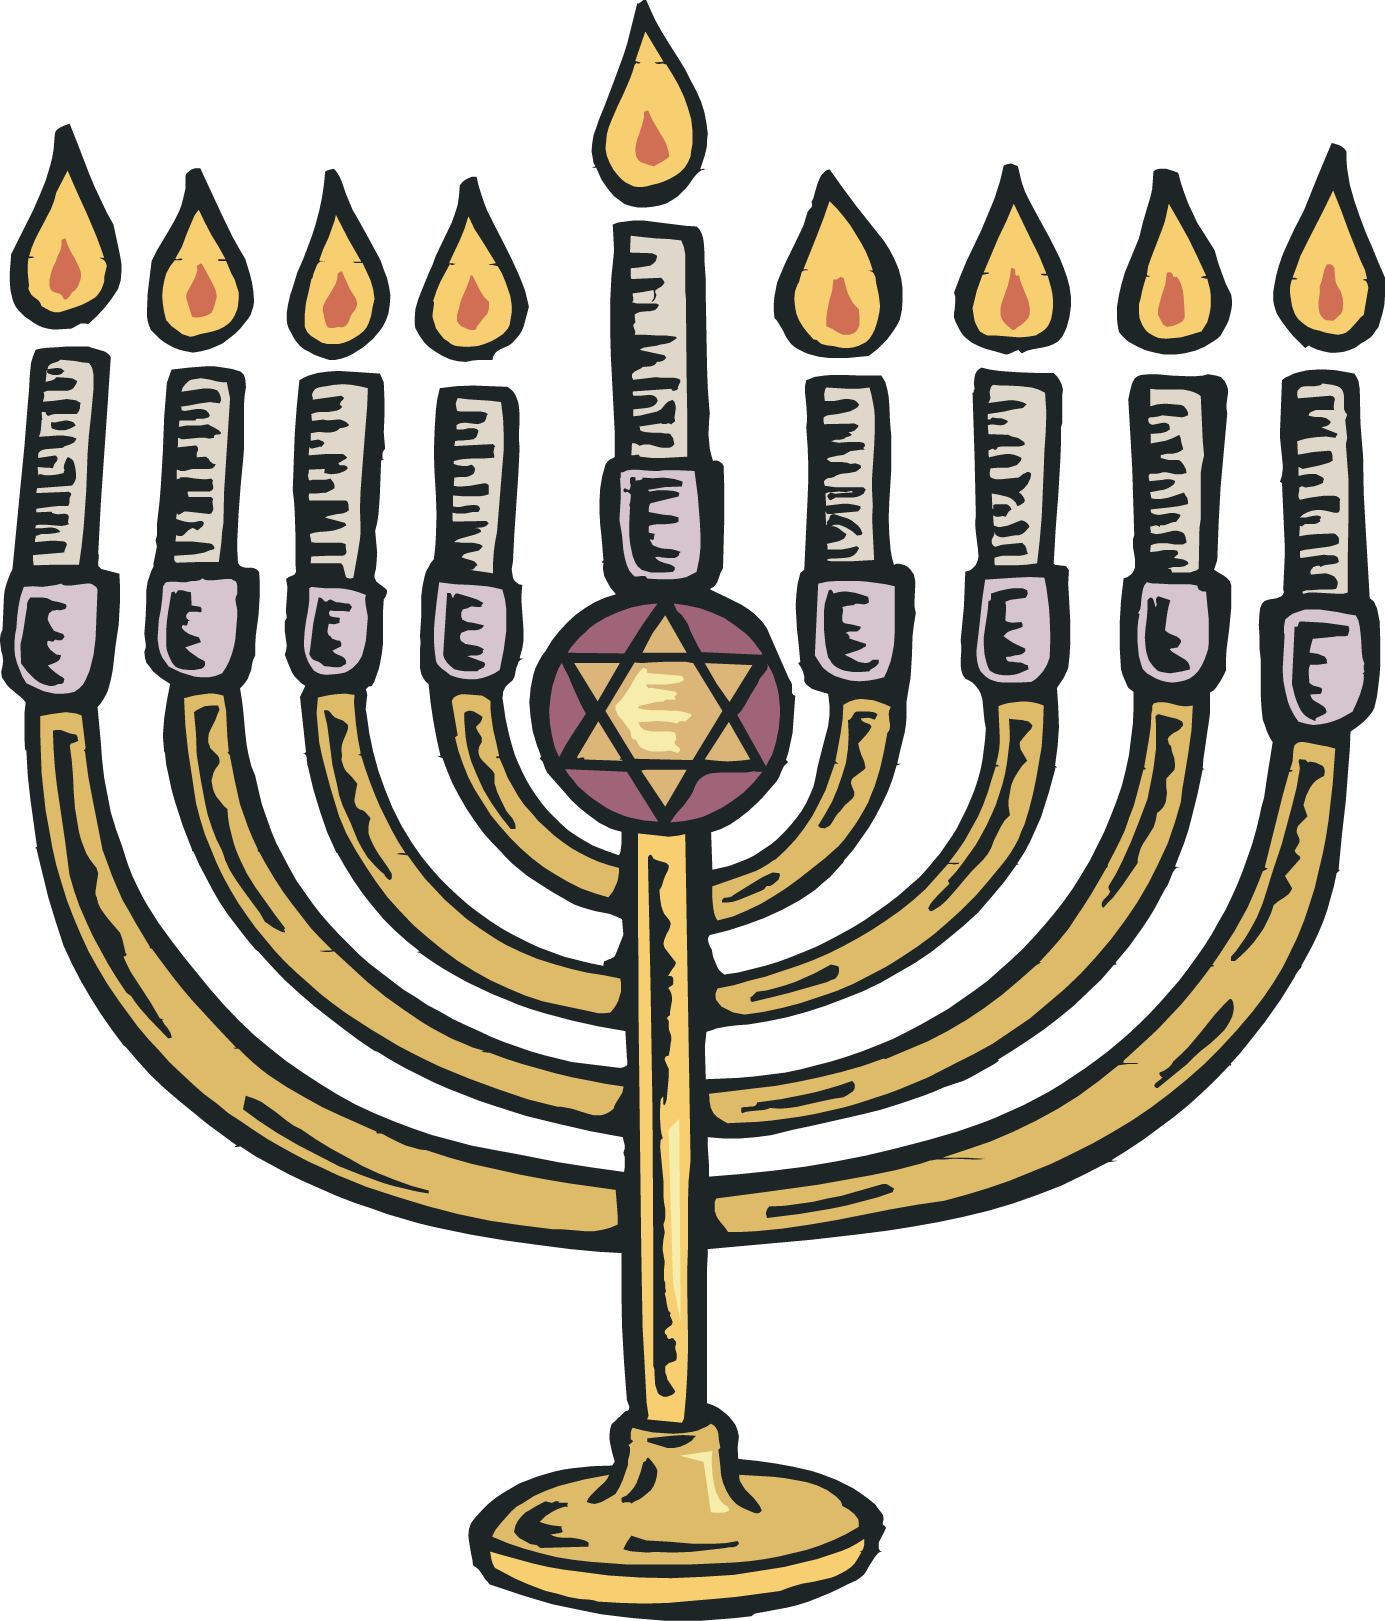 New song following the. Decoration clipart hanukkah